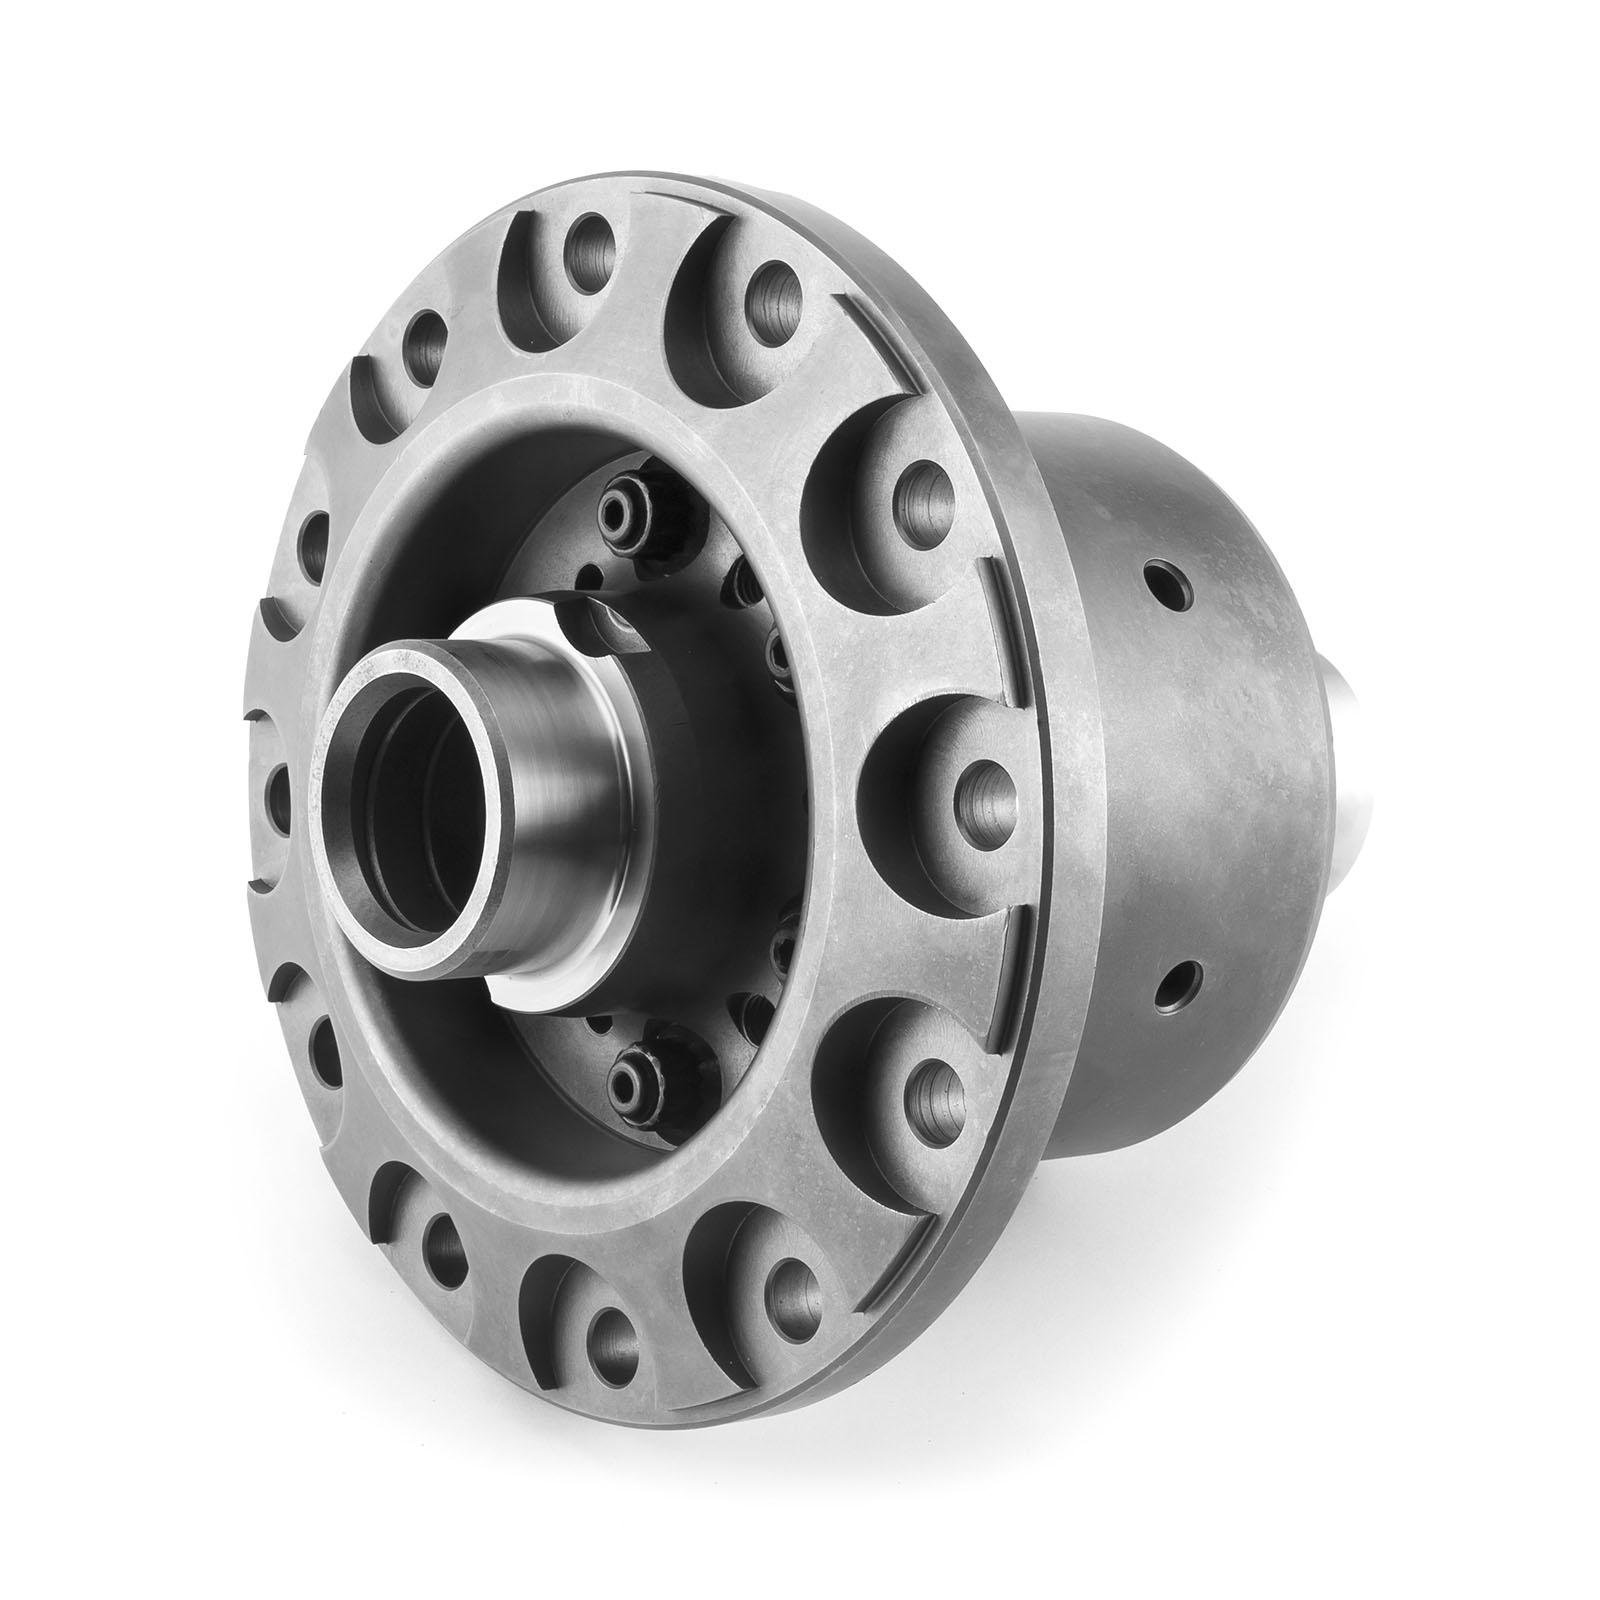 DANA 60 35 Spline 4.10 and Down TorqueWorm LSD Limited Slip Differential